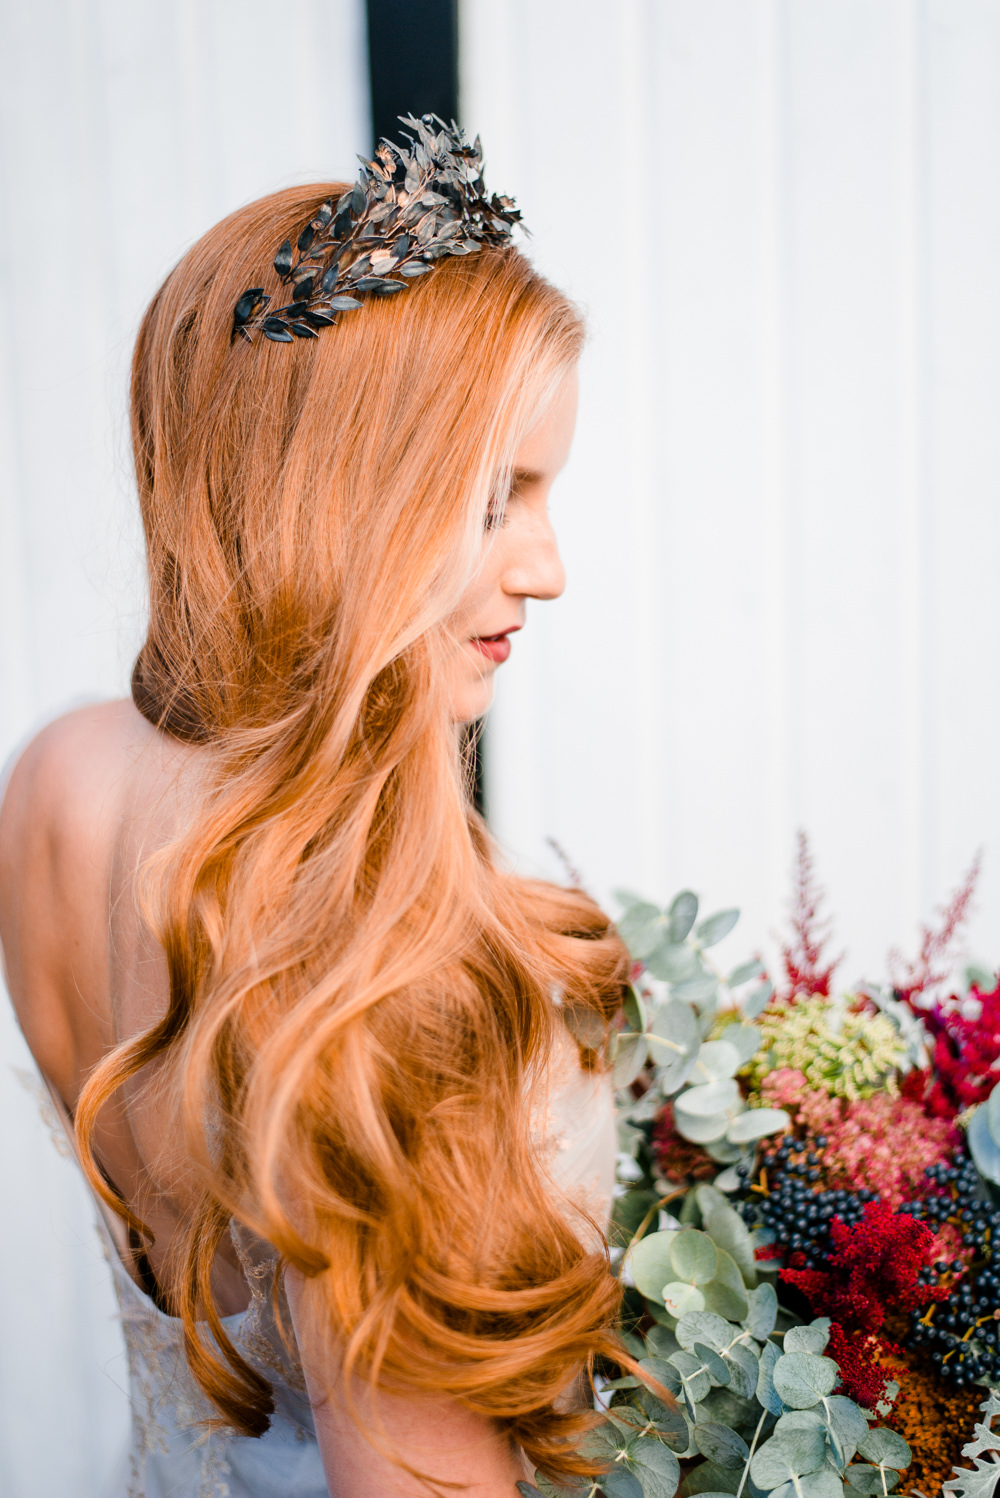 Hair Bride Bridal Loose Waves Style Curls Tiara Accessory Autumnal Fairytale Wedding Ideas Miriam Peuser Photography